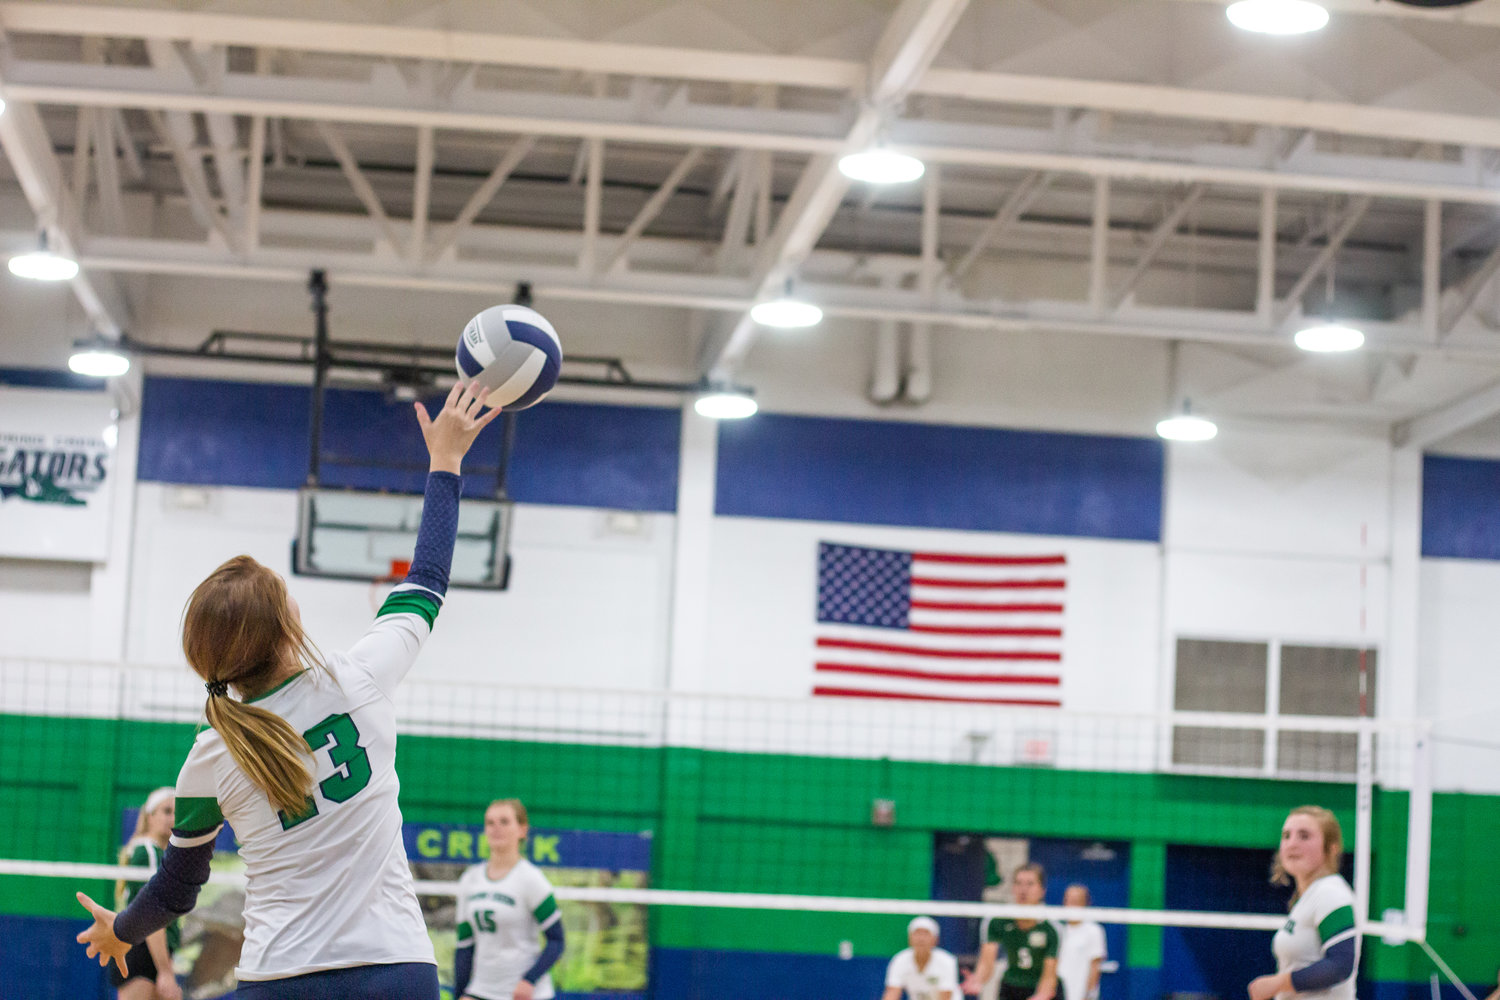 Spring Creek's Alissa Price serves in the third set against North Duplin.